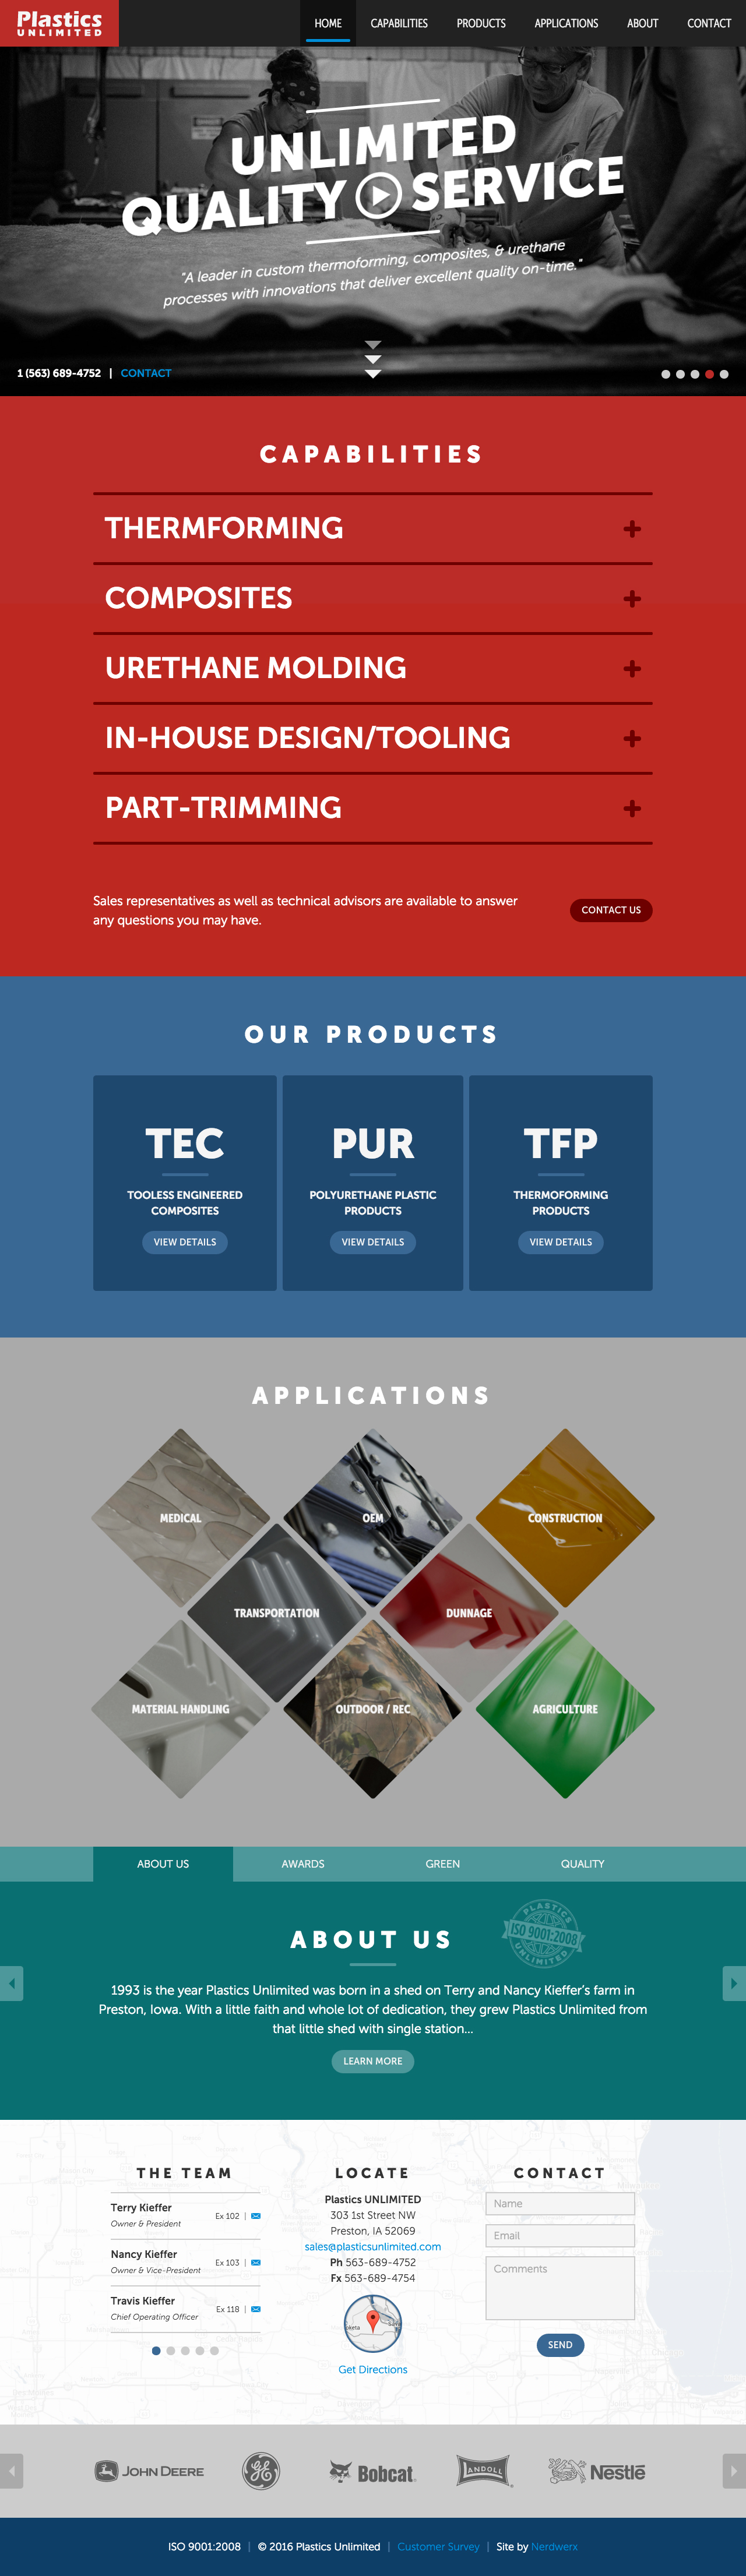 Plastics Unlimited Website Screenshot